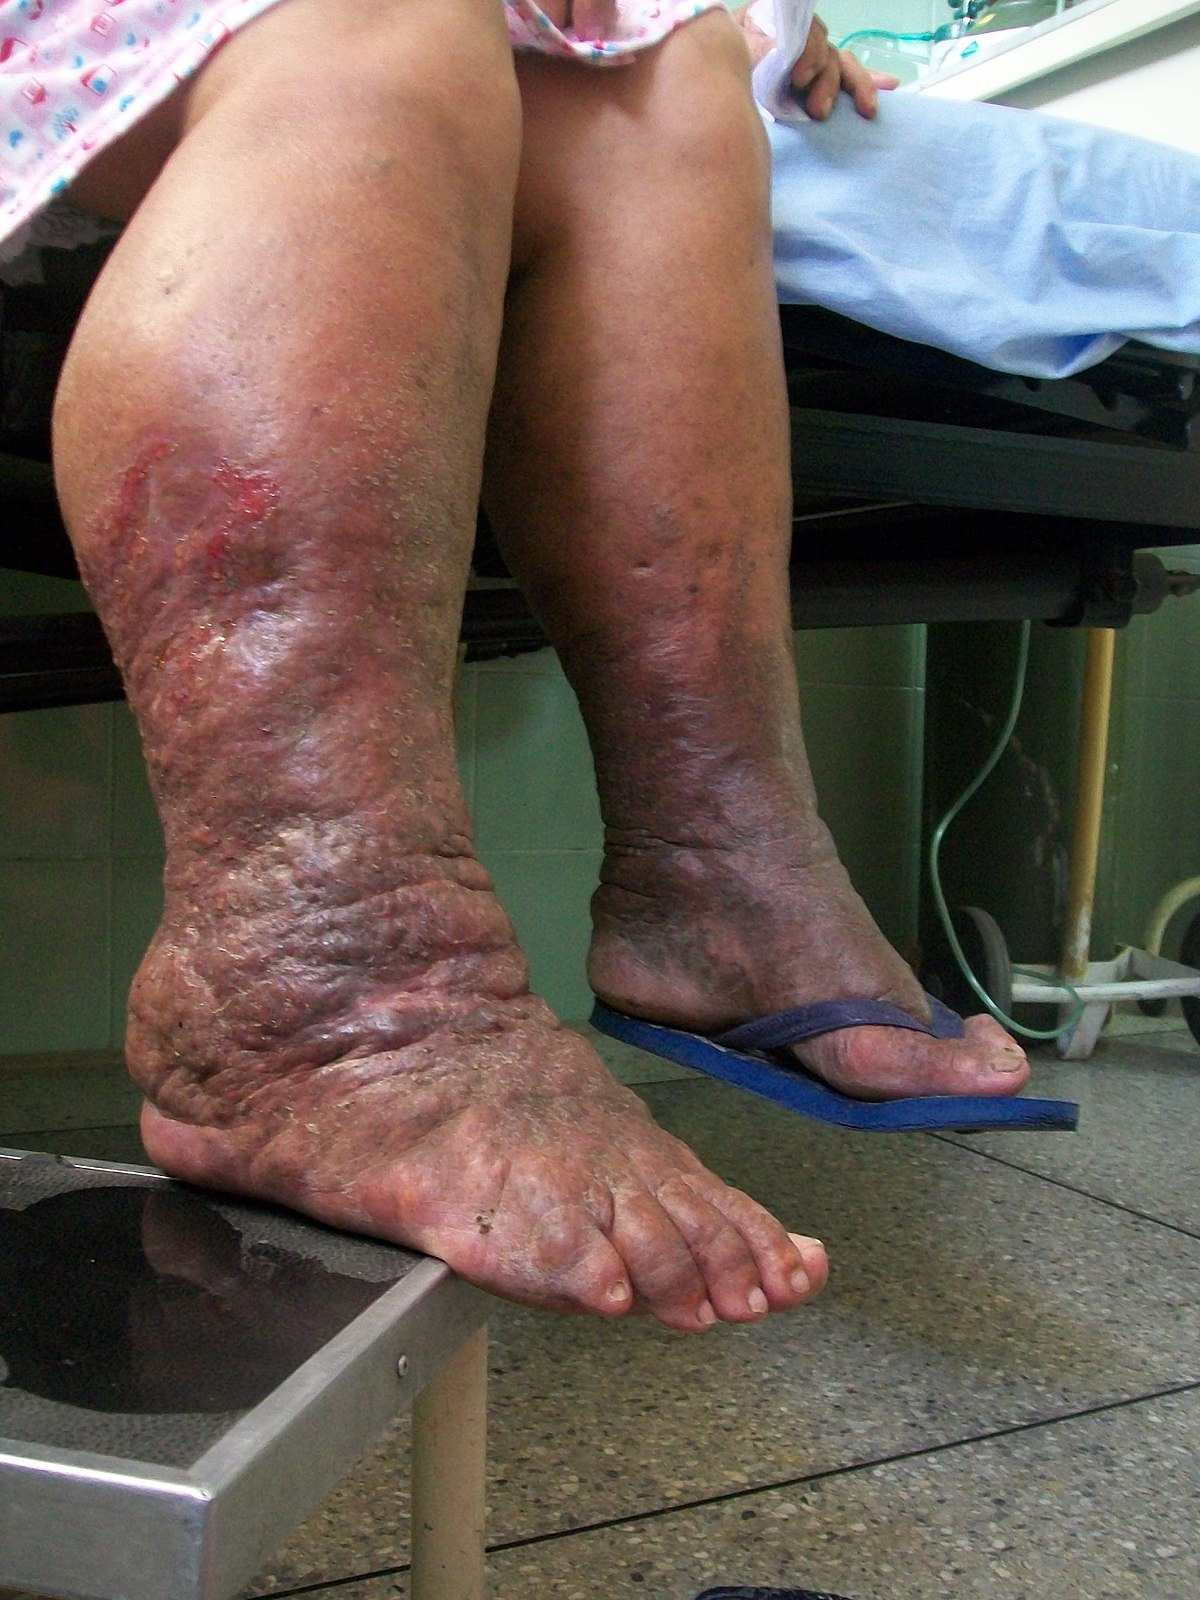 Lymphedema Wikipedia